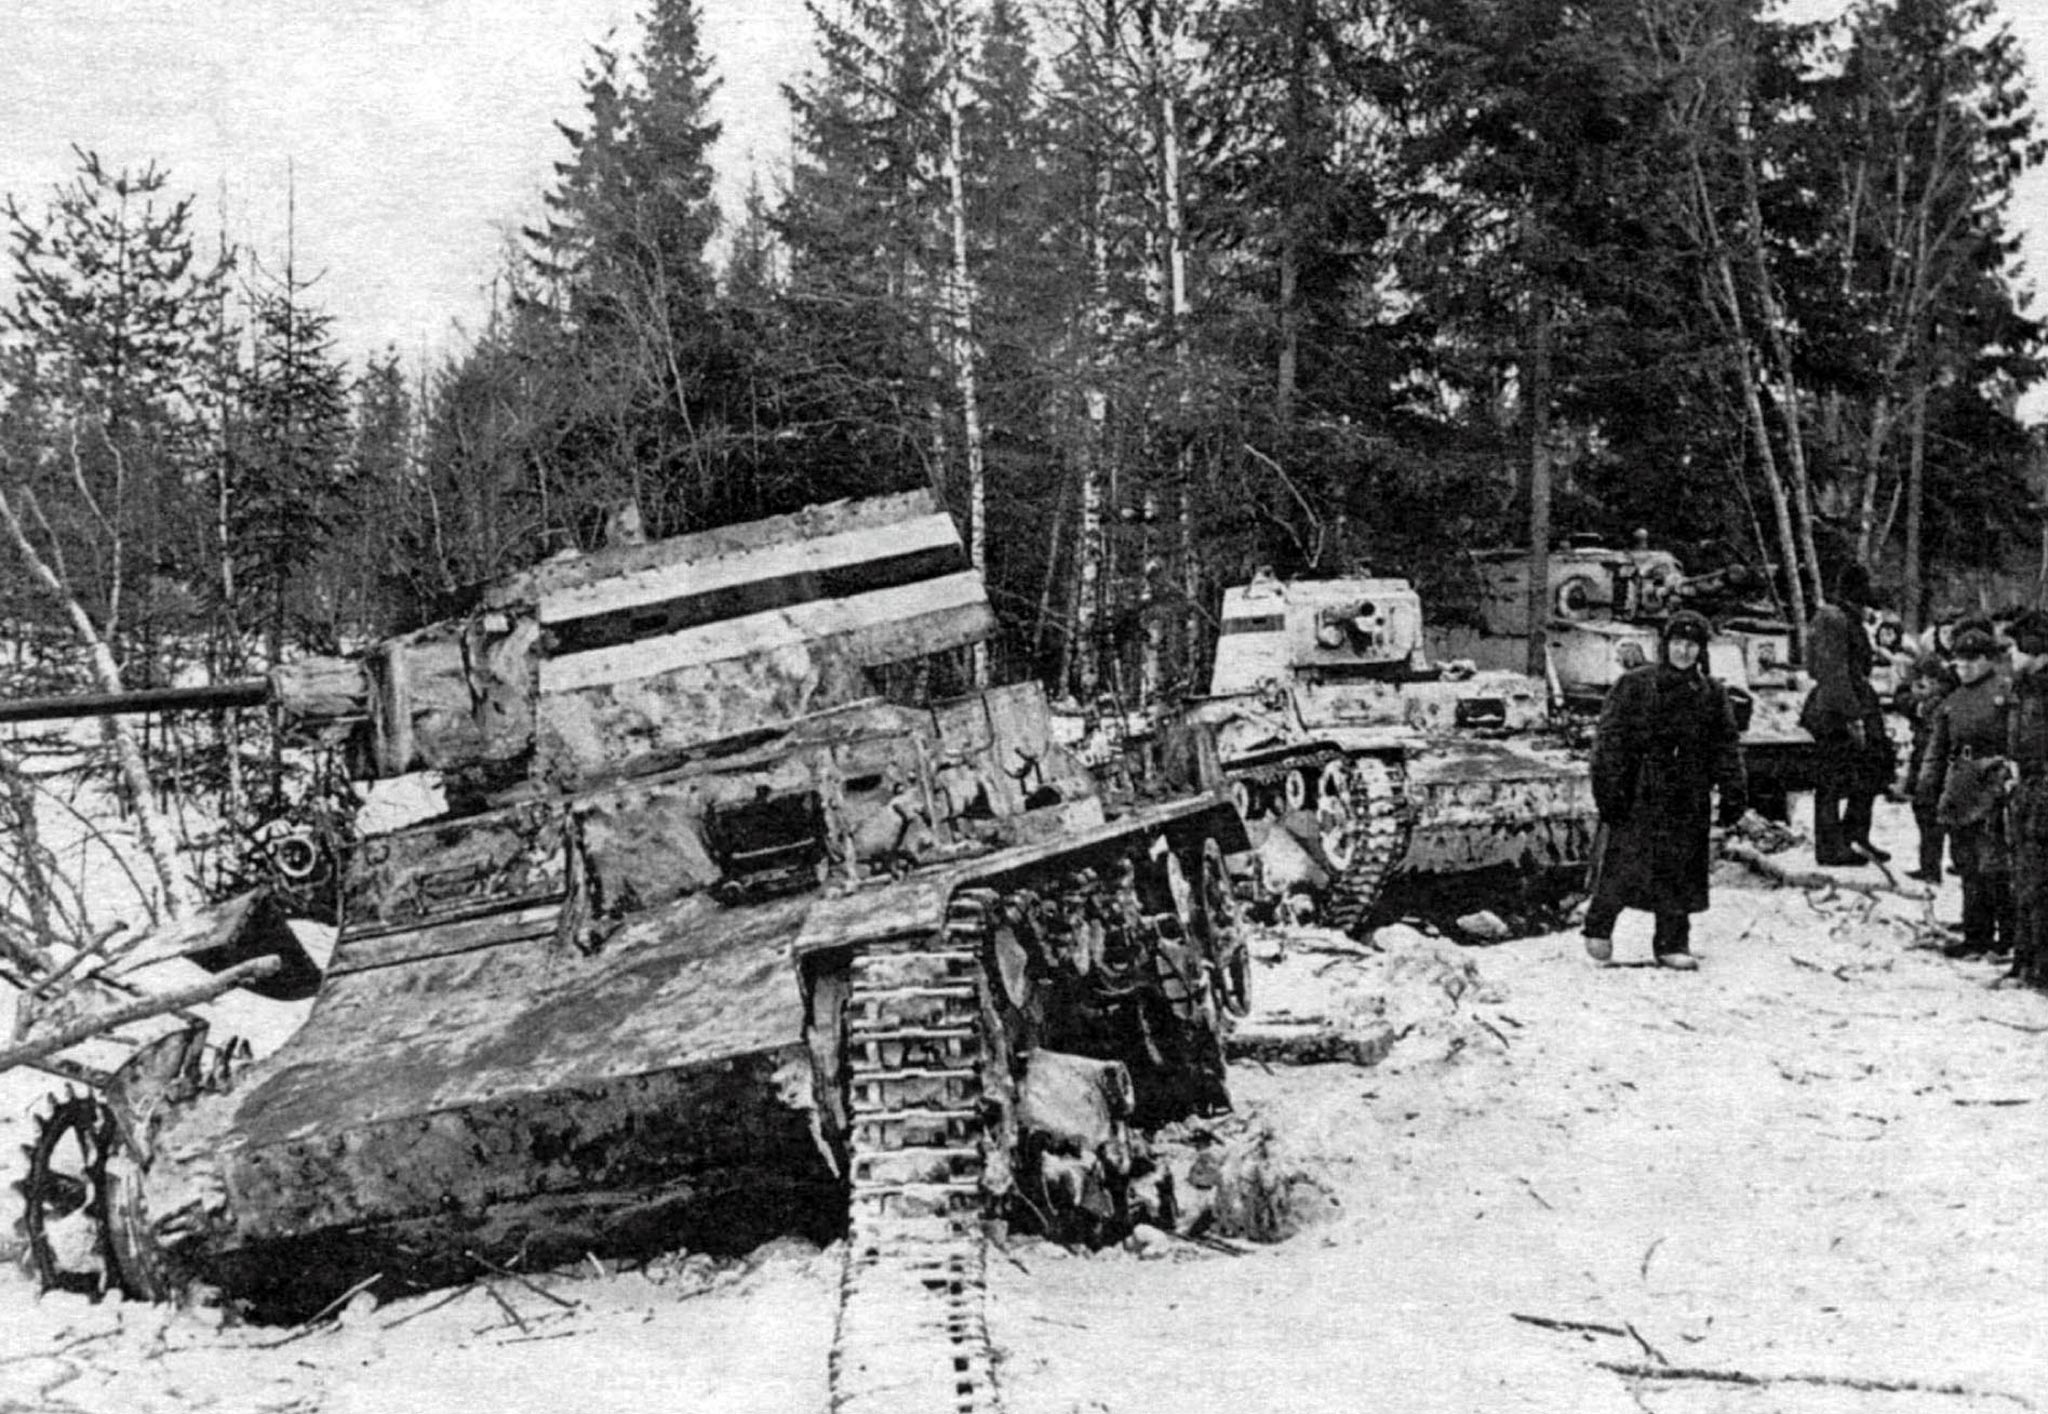 The destroyed finn vickers tanks and the soviet t 28 tank in 1940